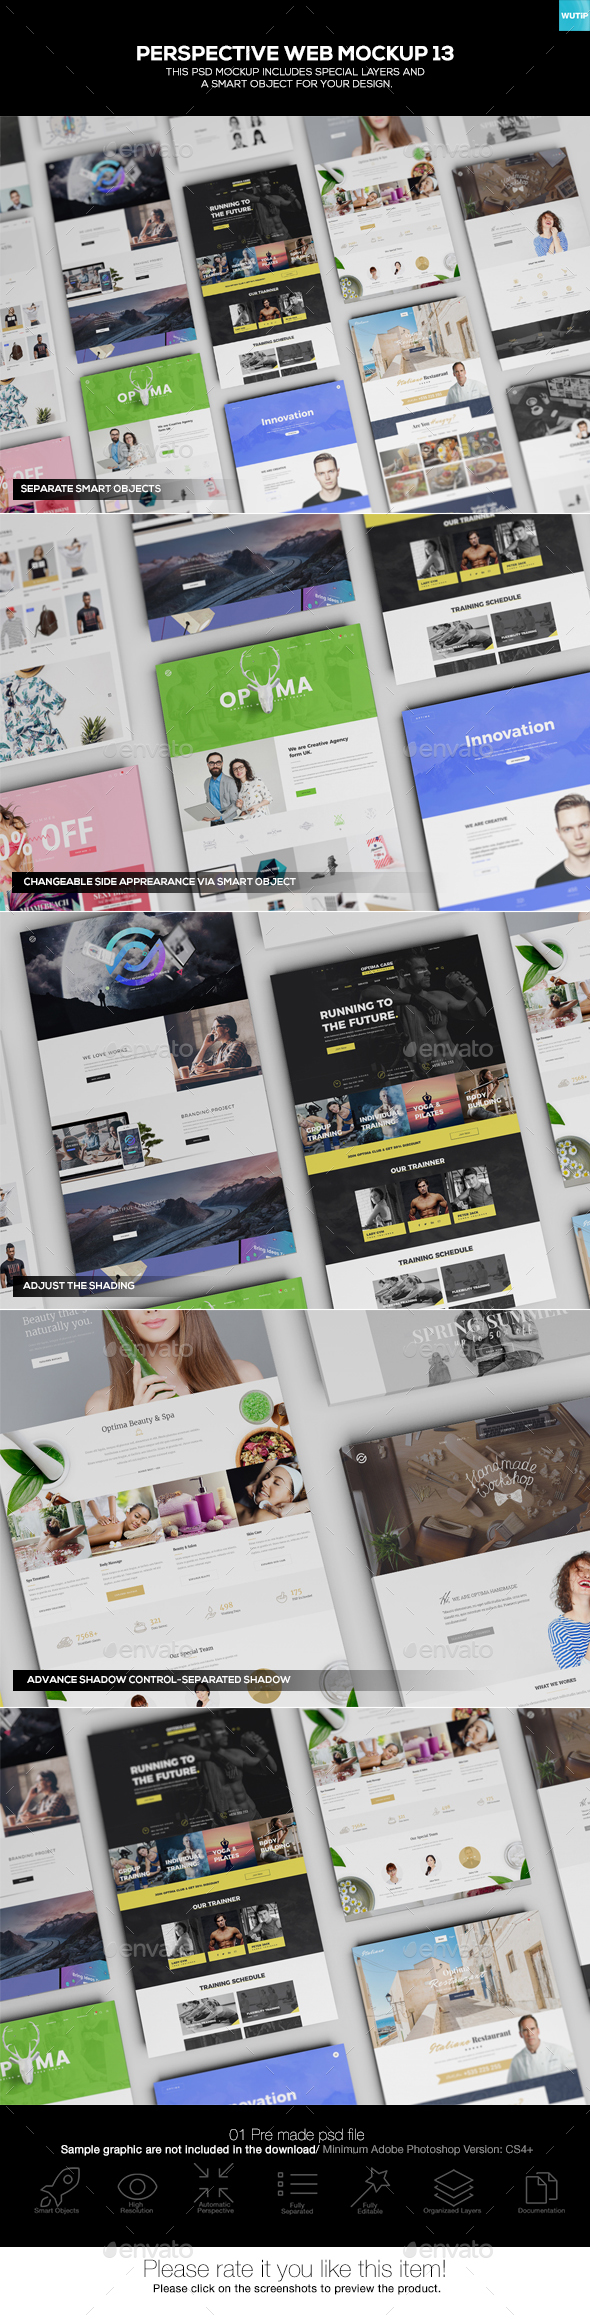 Perspective Web Mockup 13 - Website Displays